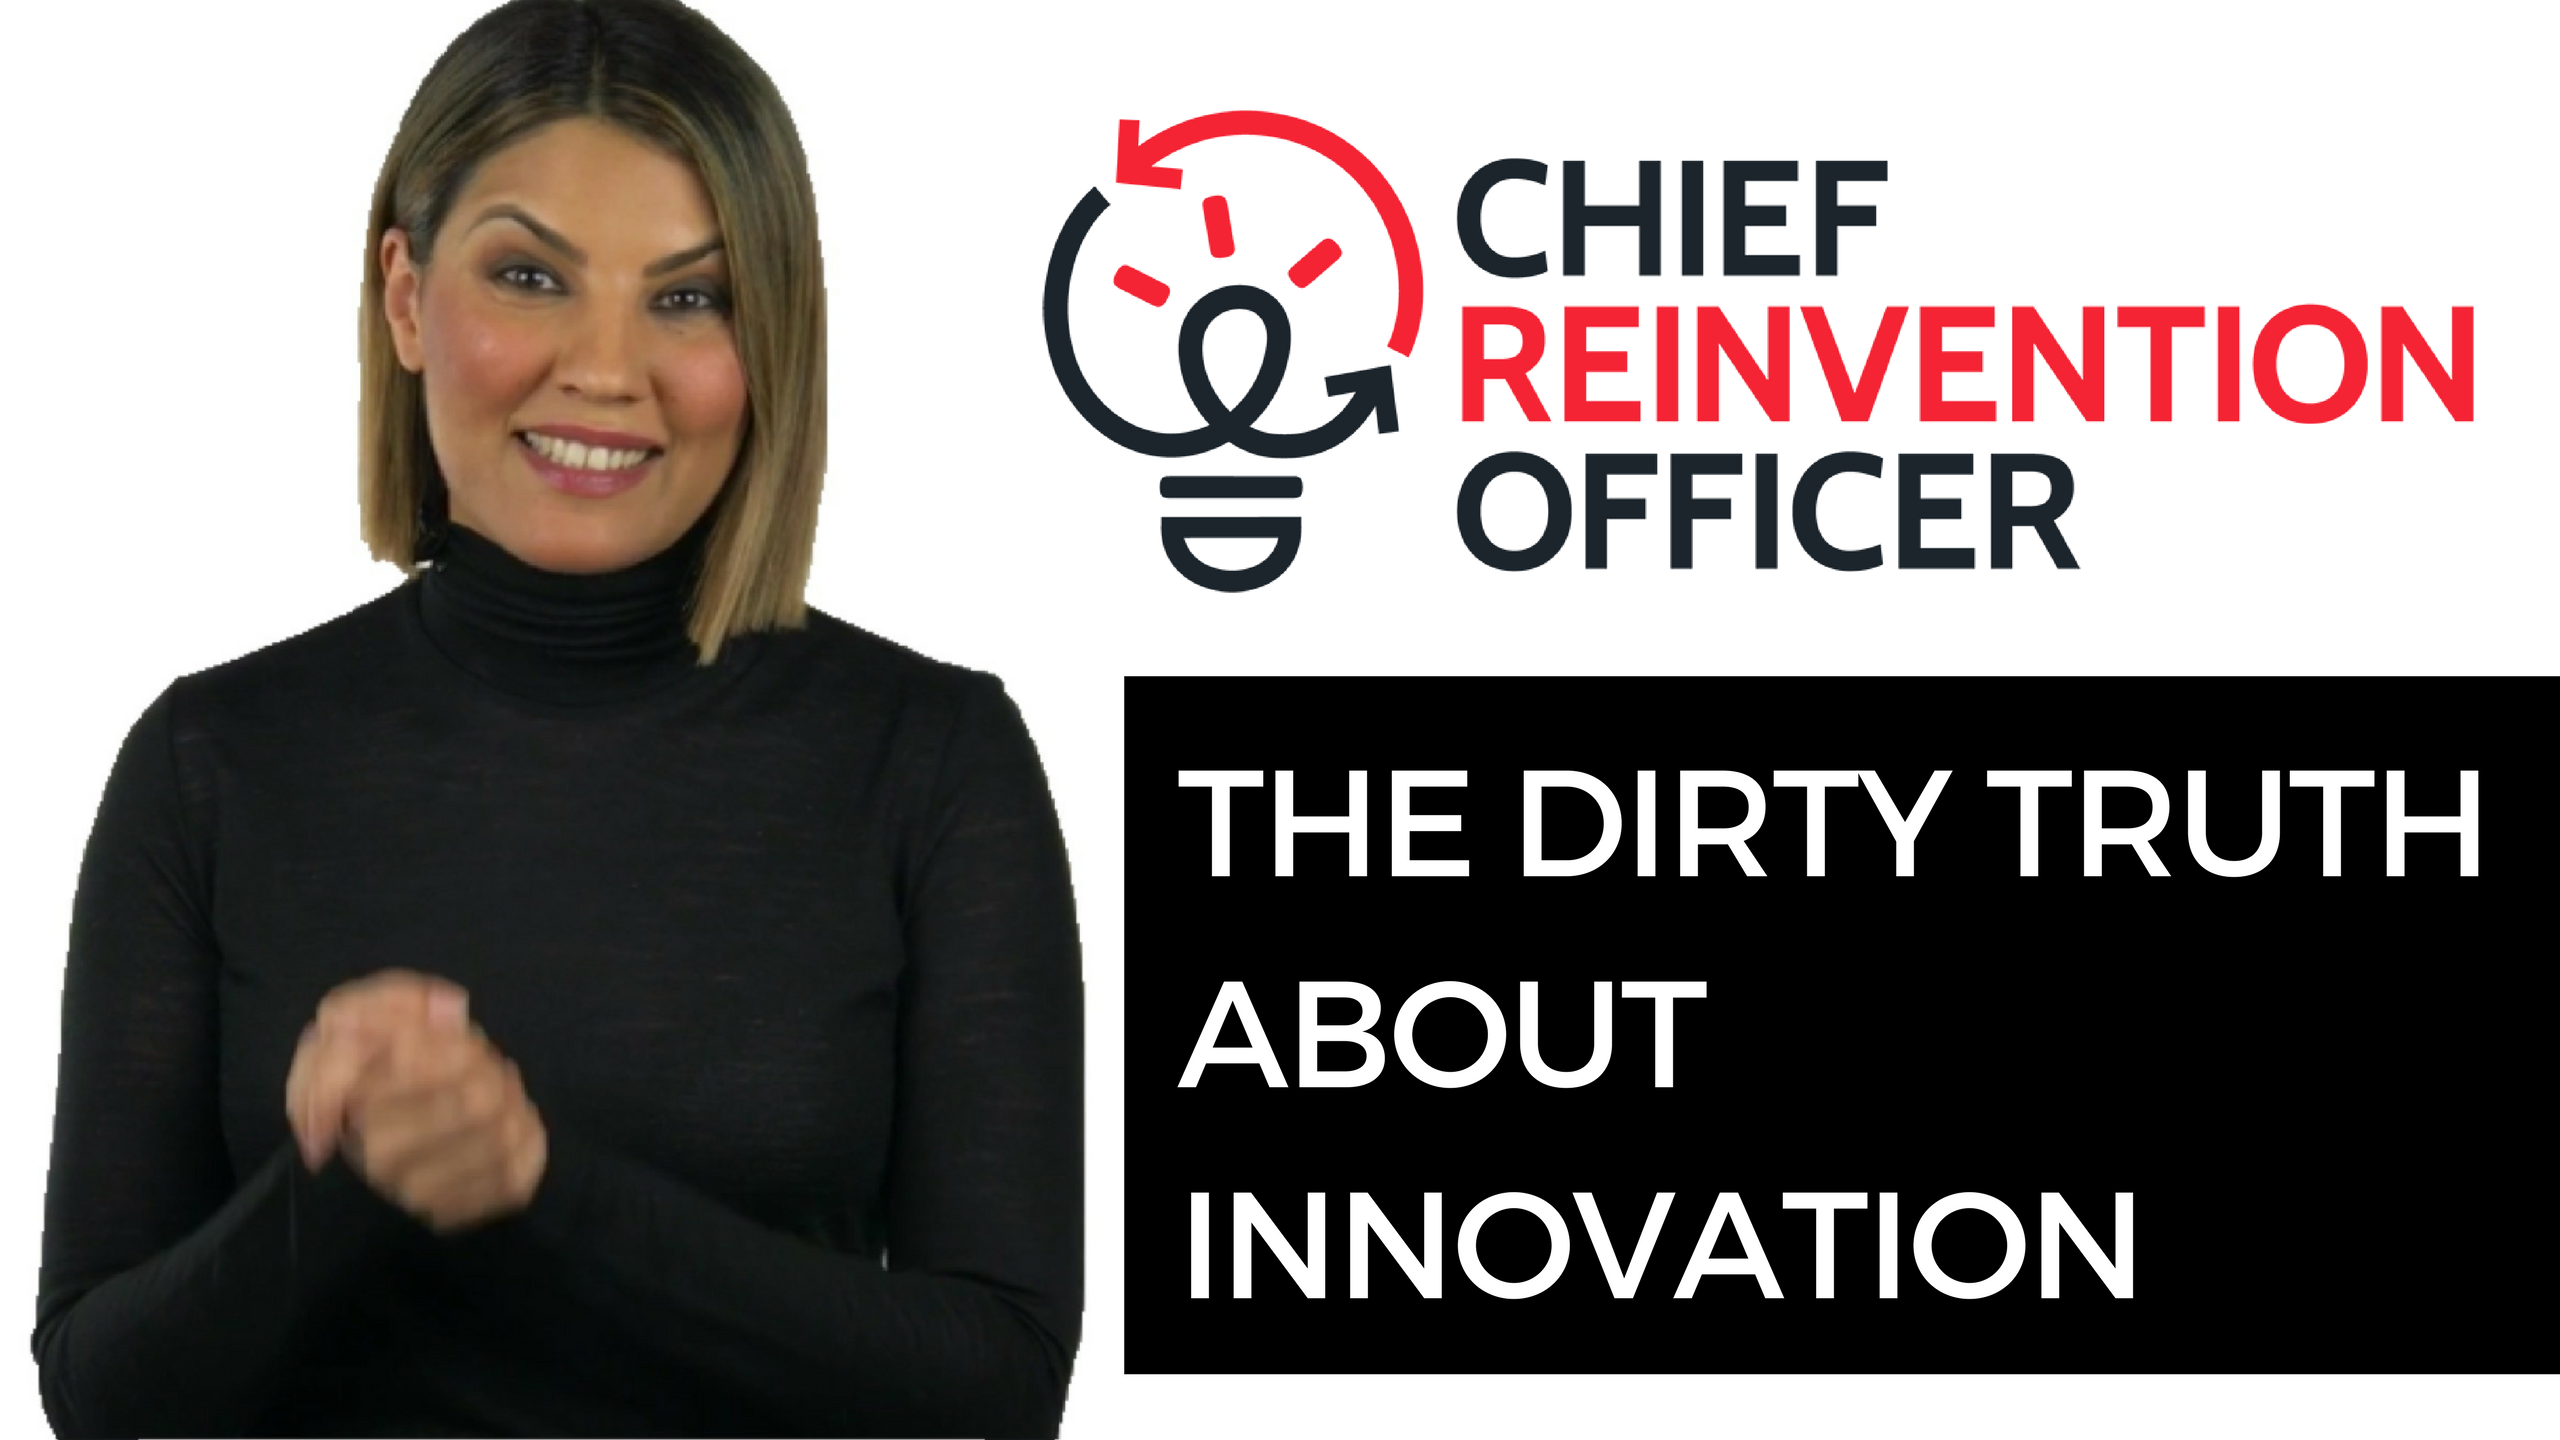 Breaking the myth of innovation: the dirty truth is that very few of us can innovate.